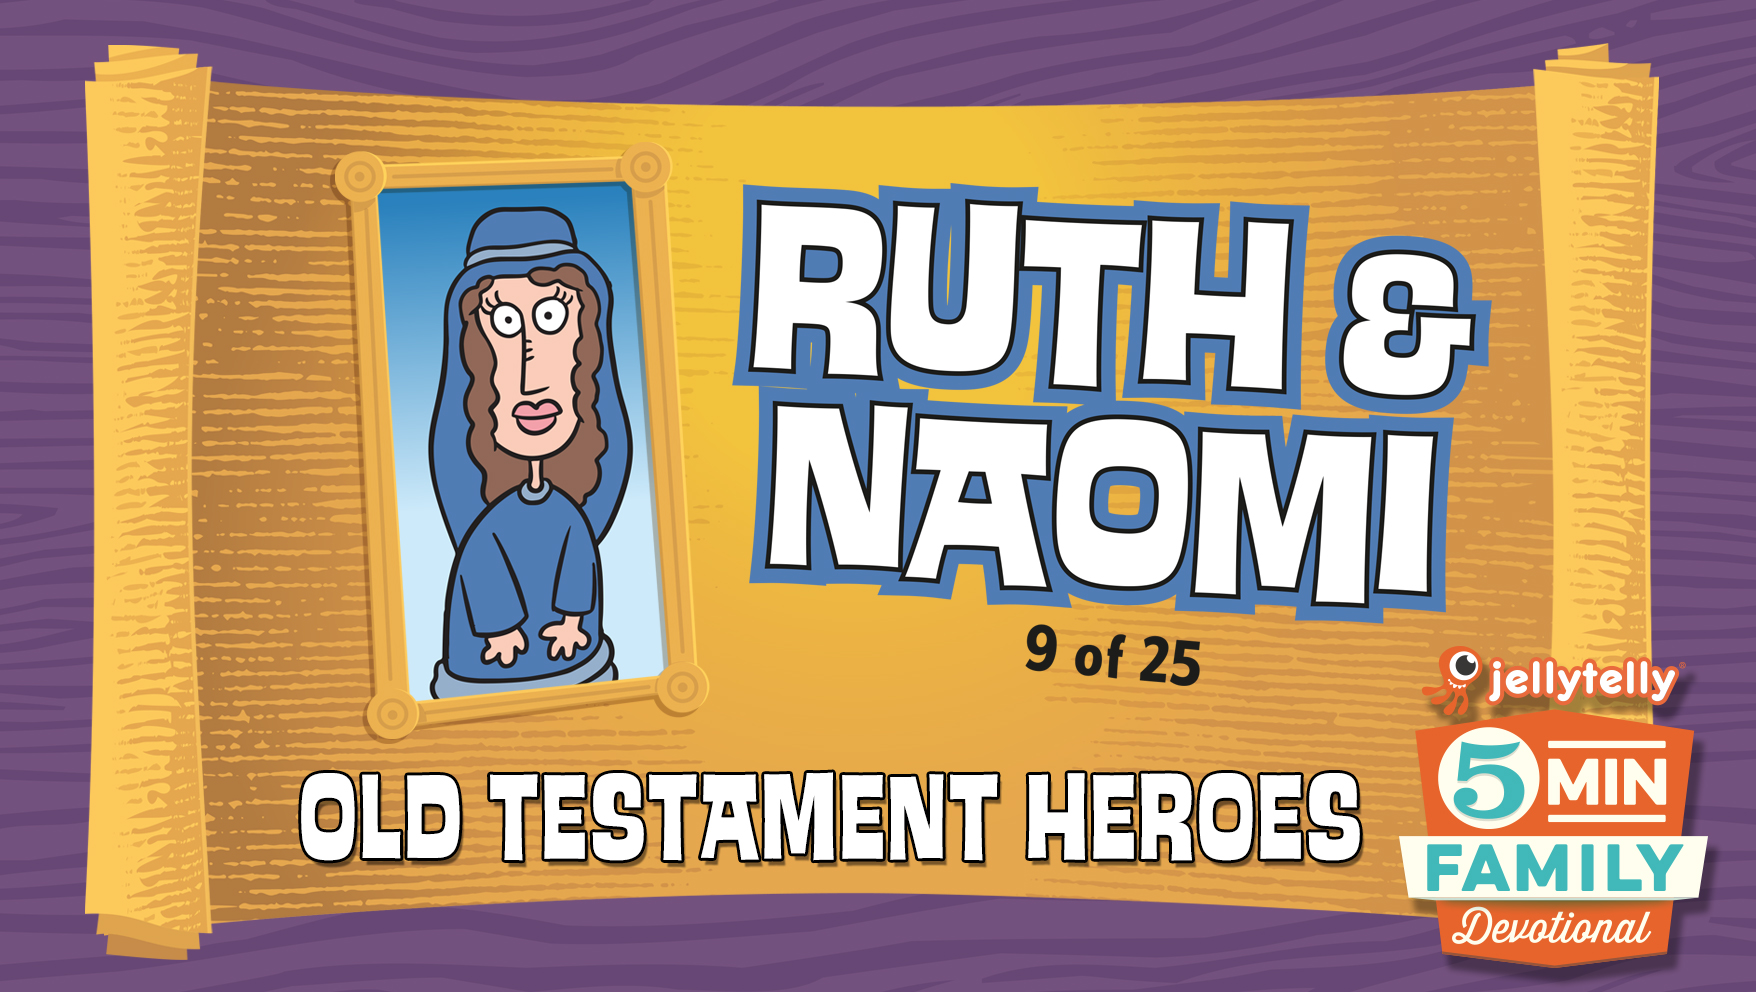 Ruth: Old Testament Heroes - 5 Minute Family Devotional